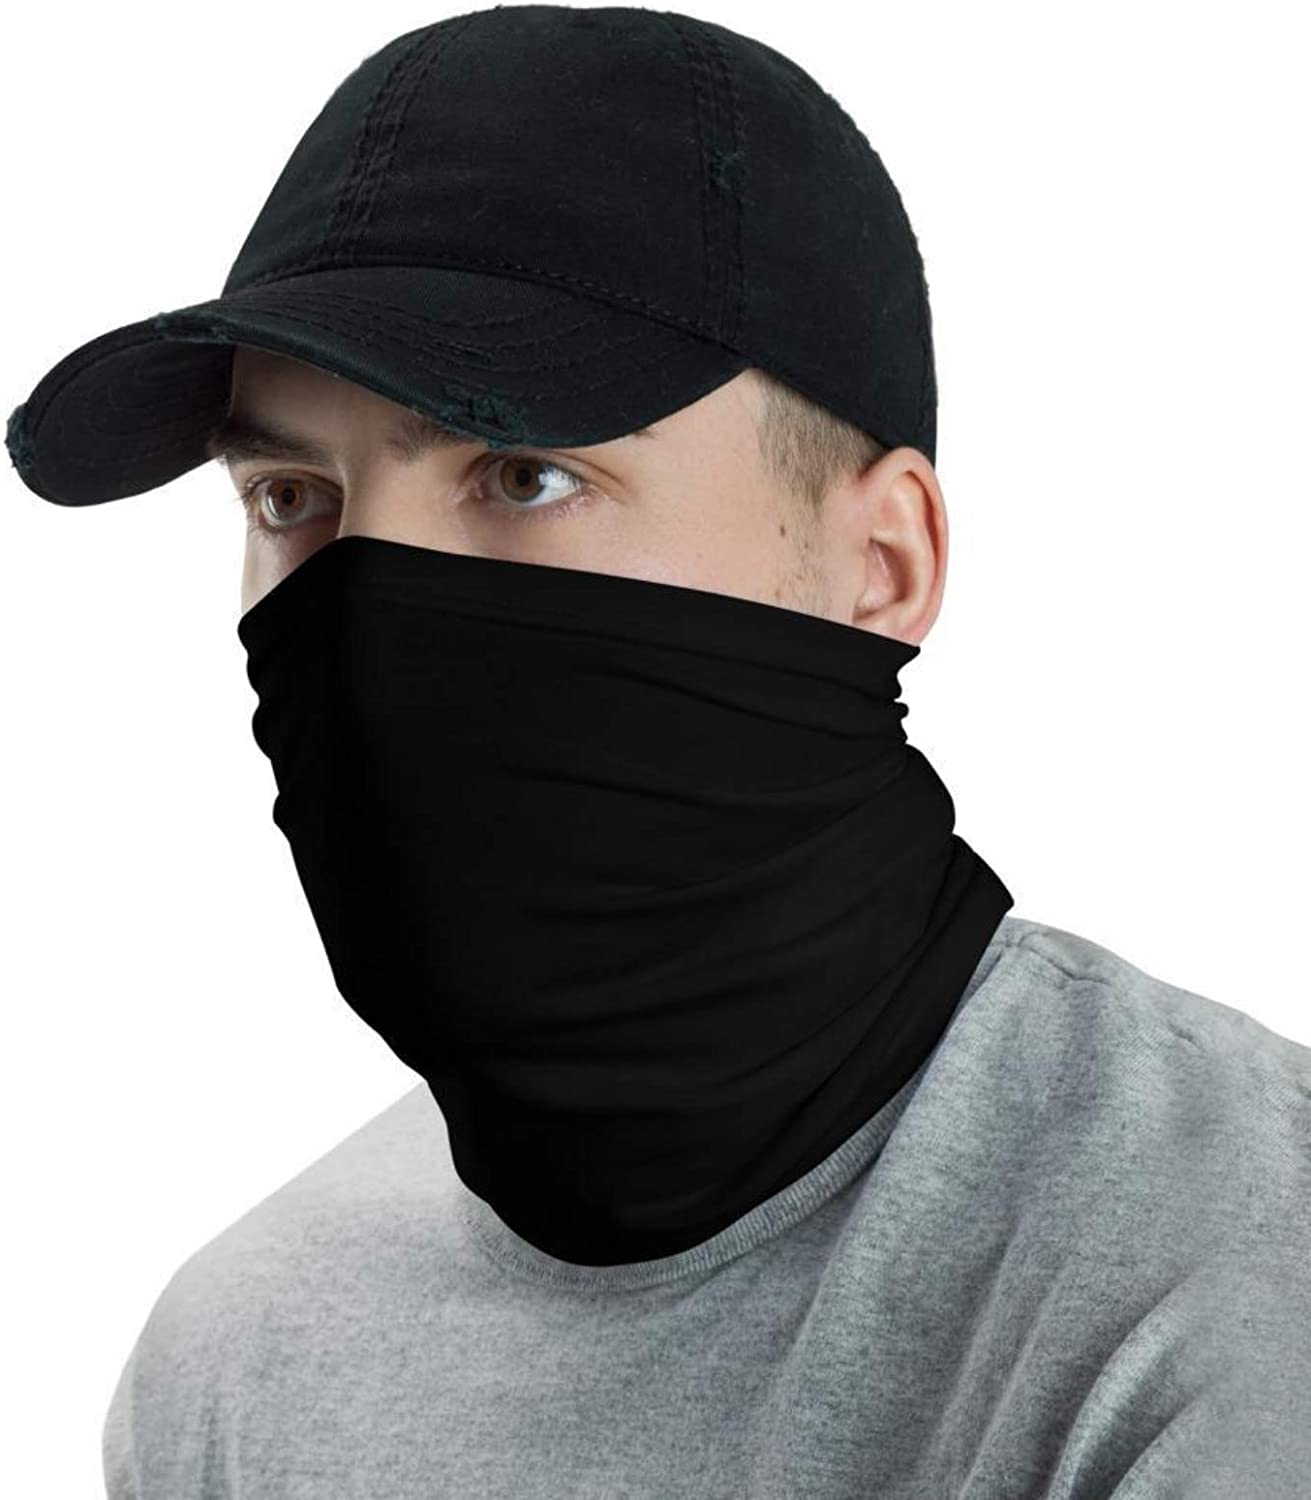 Van Company Multifunctional Neck Gaiter Thin Flag Superior Special price for a limited time American bl